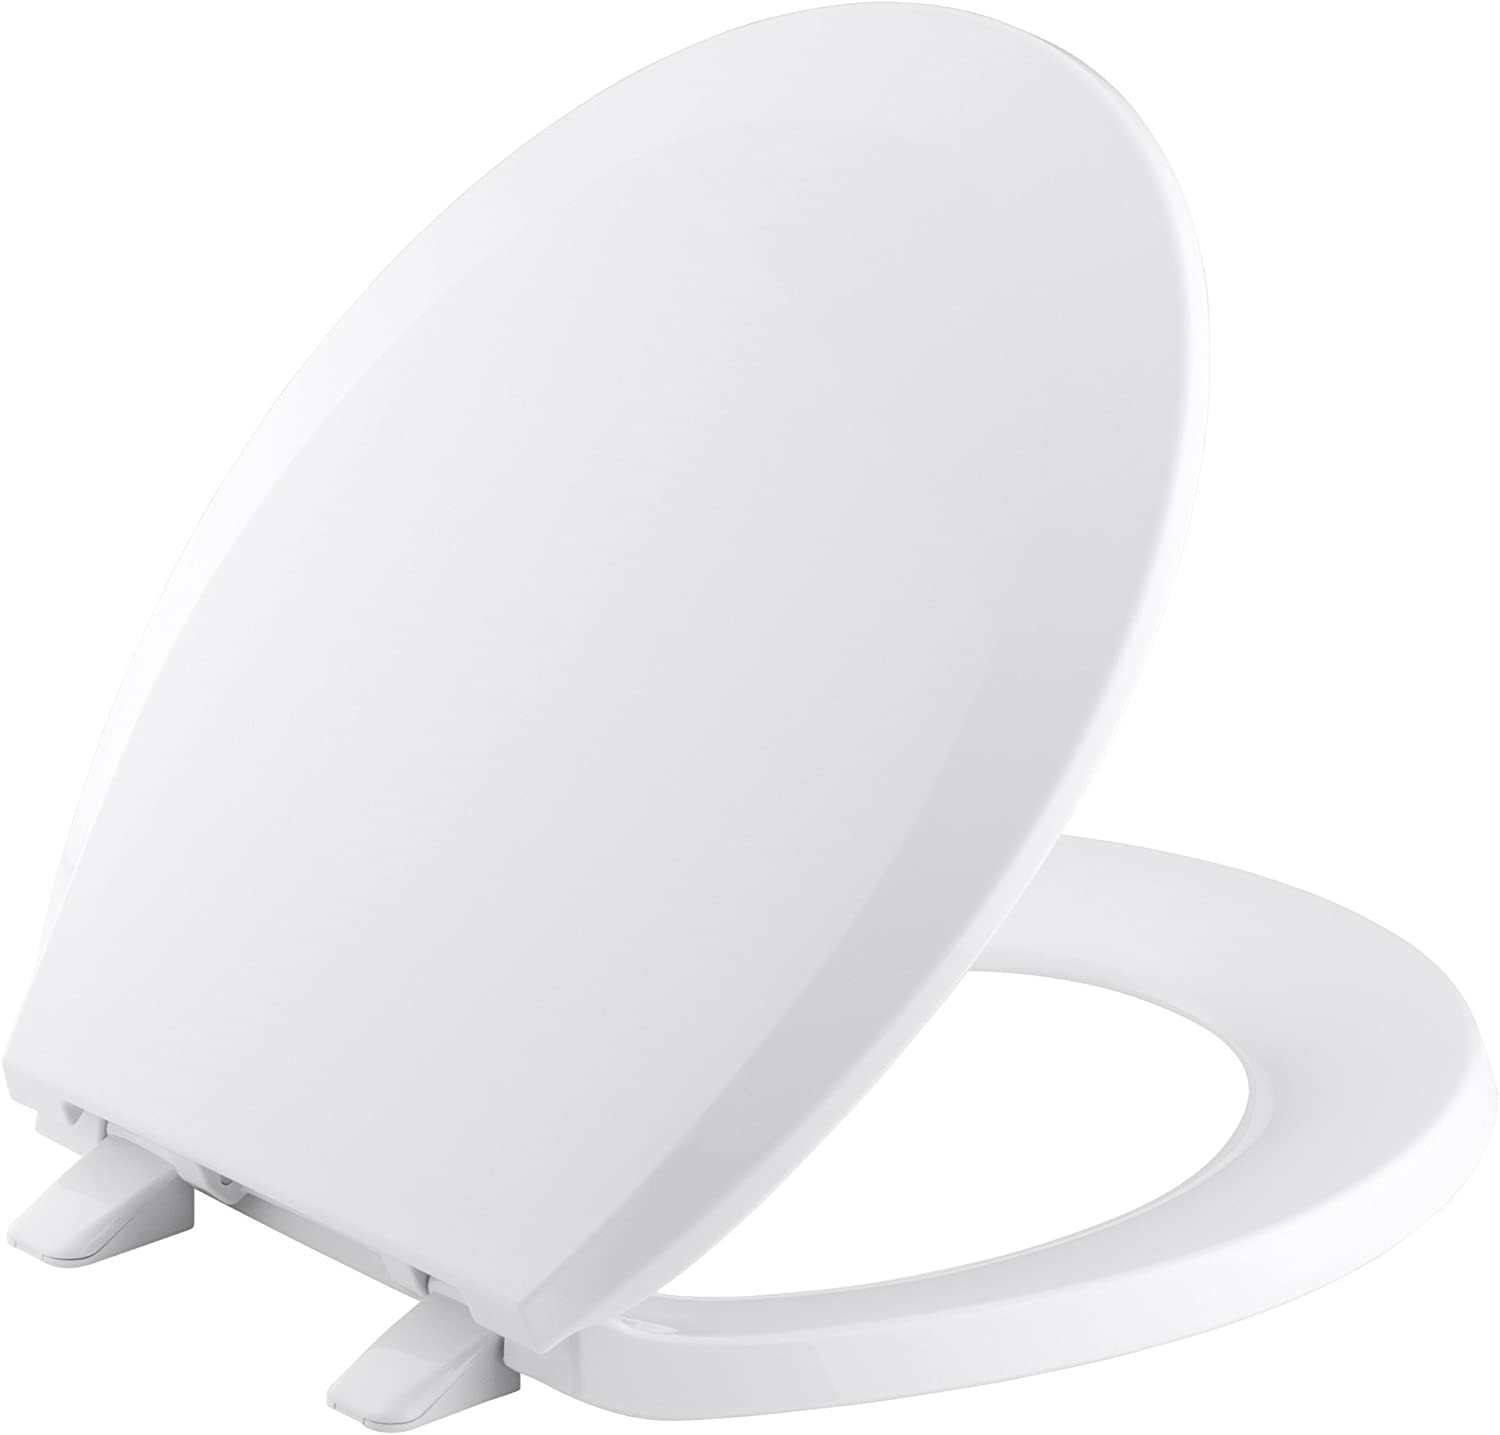 B00084FNQ4 KOHLER K-4662-W2 Lustra with Quick-Release Hinges Round-front Toilet Seat, Earthen White 61ua0NwXhhL